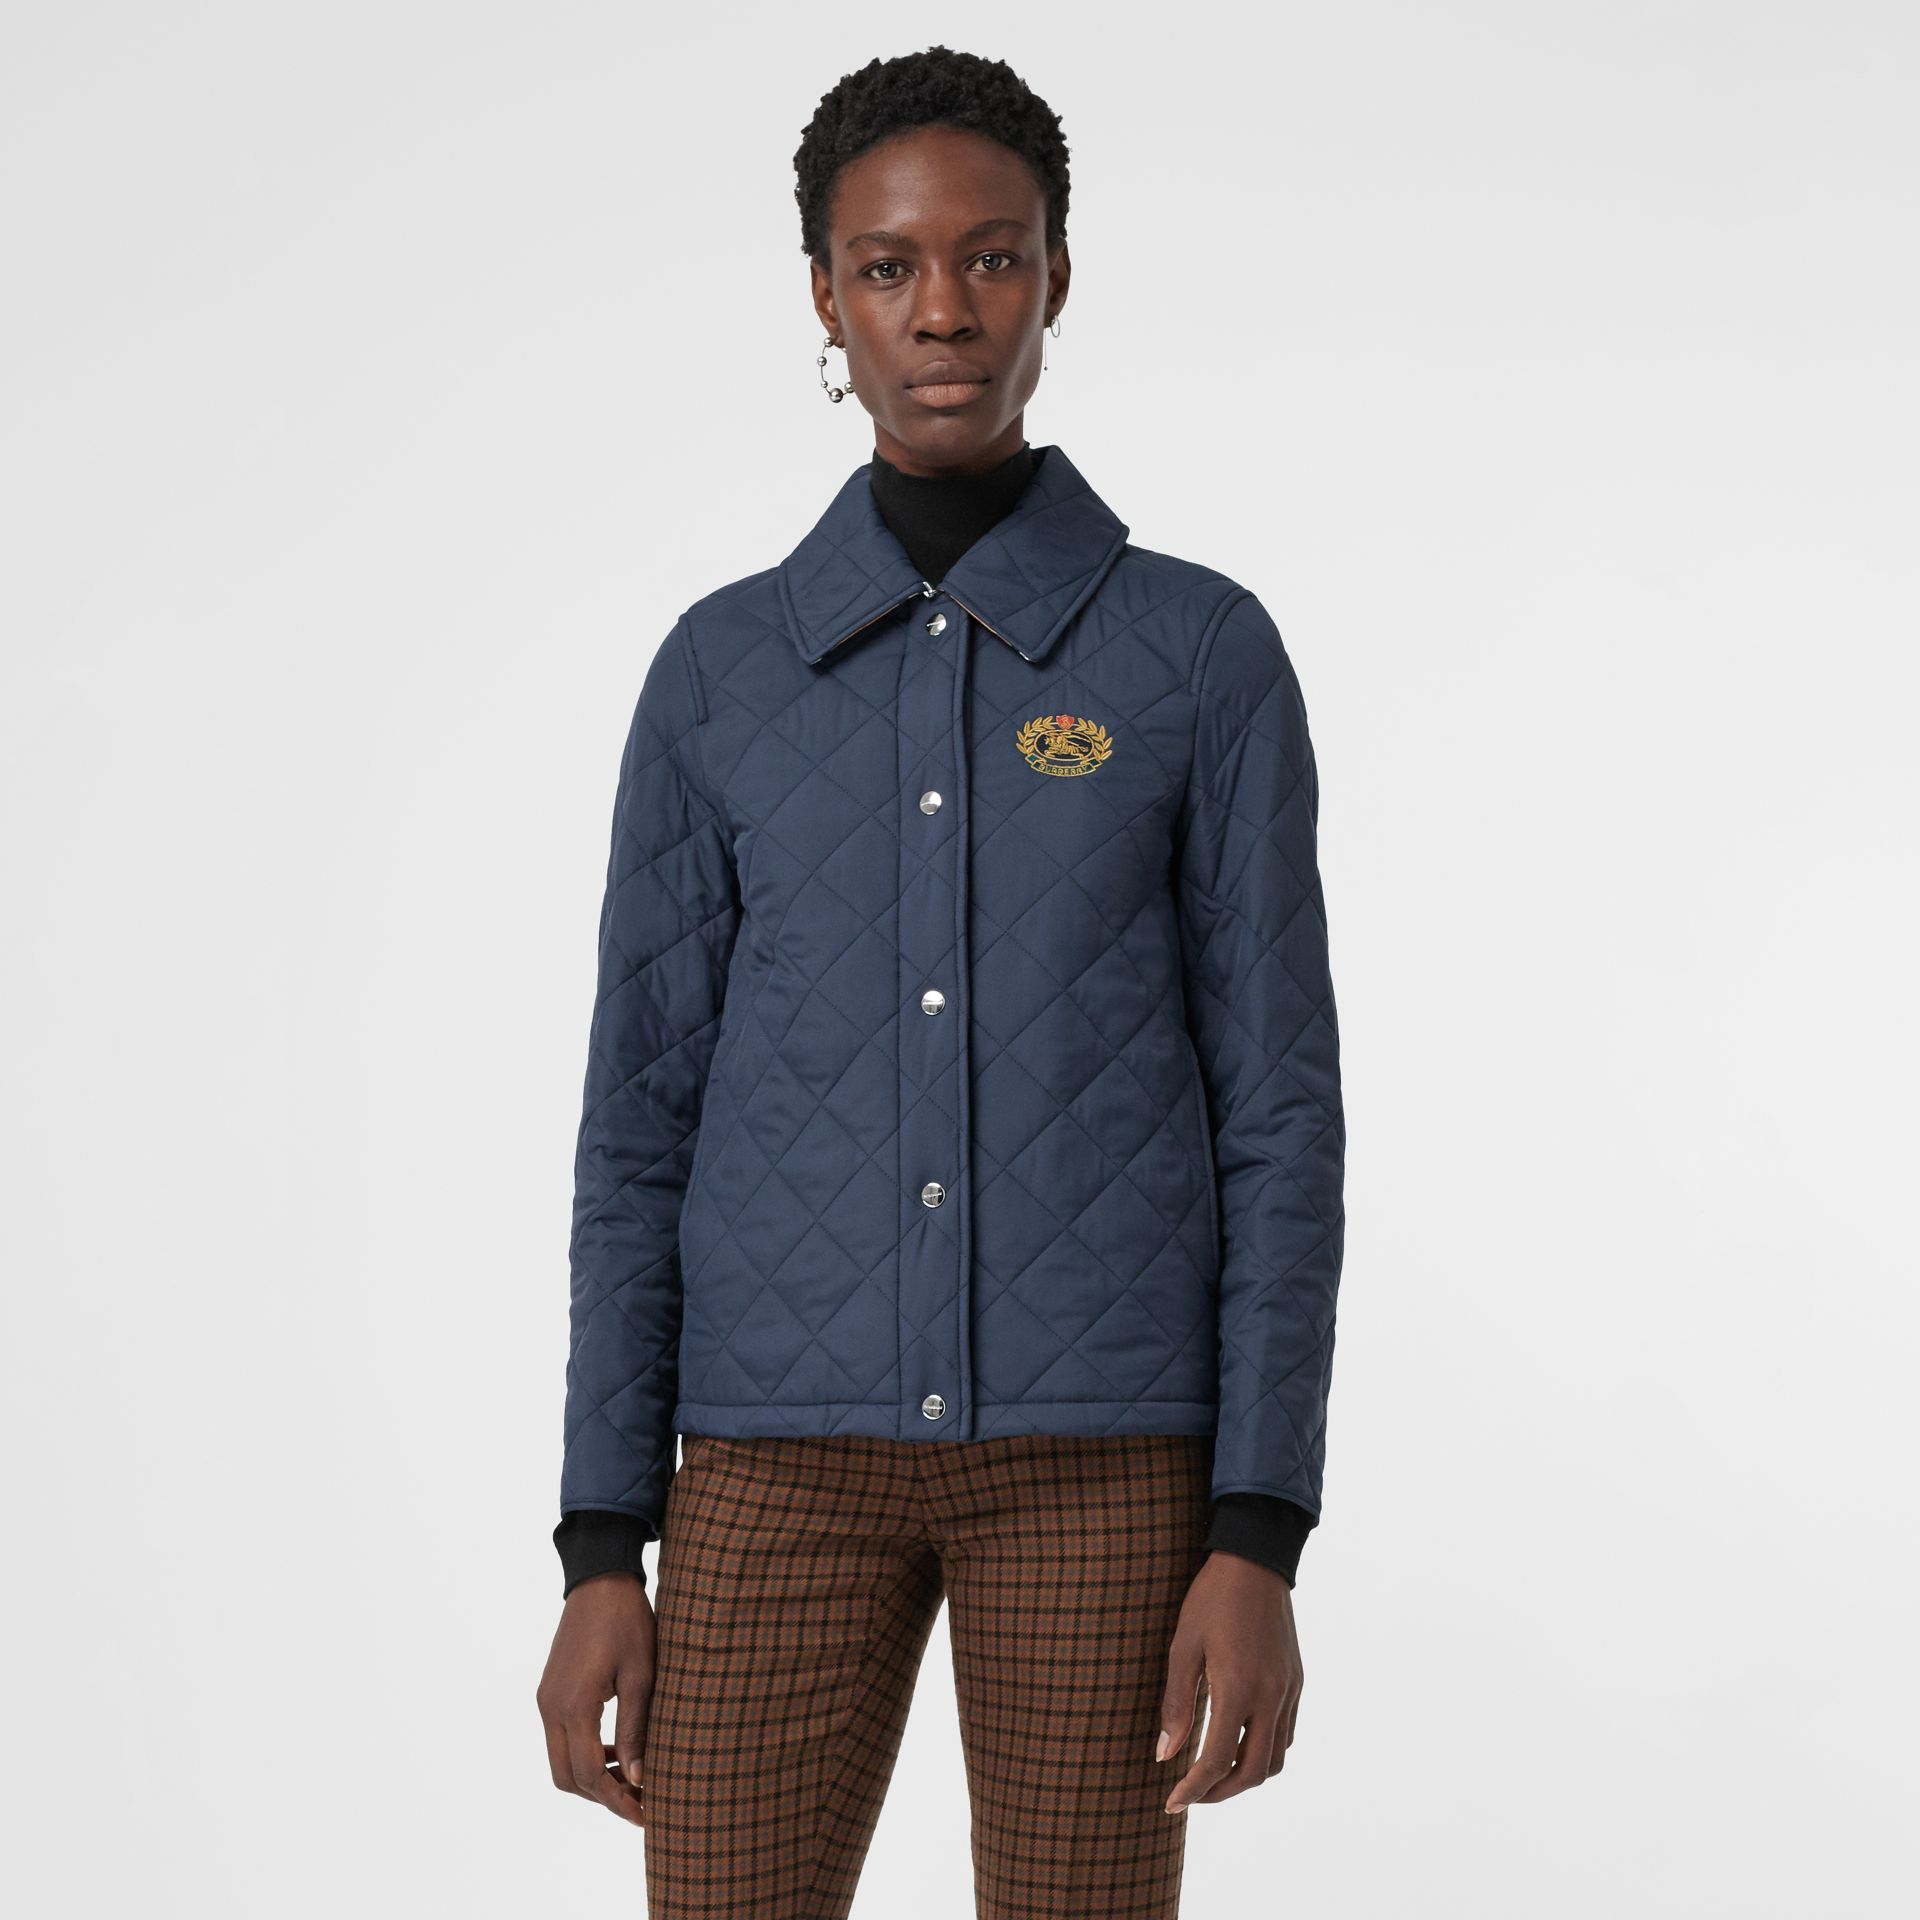 Embroidered Crest Diamond Quilted Jacket in Navy - Women | Burberry Australia - gallery image 5